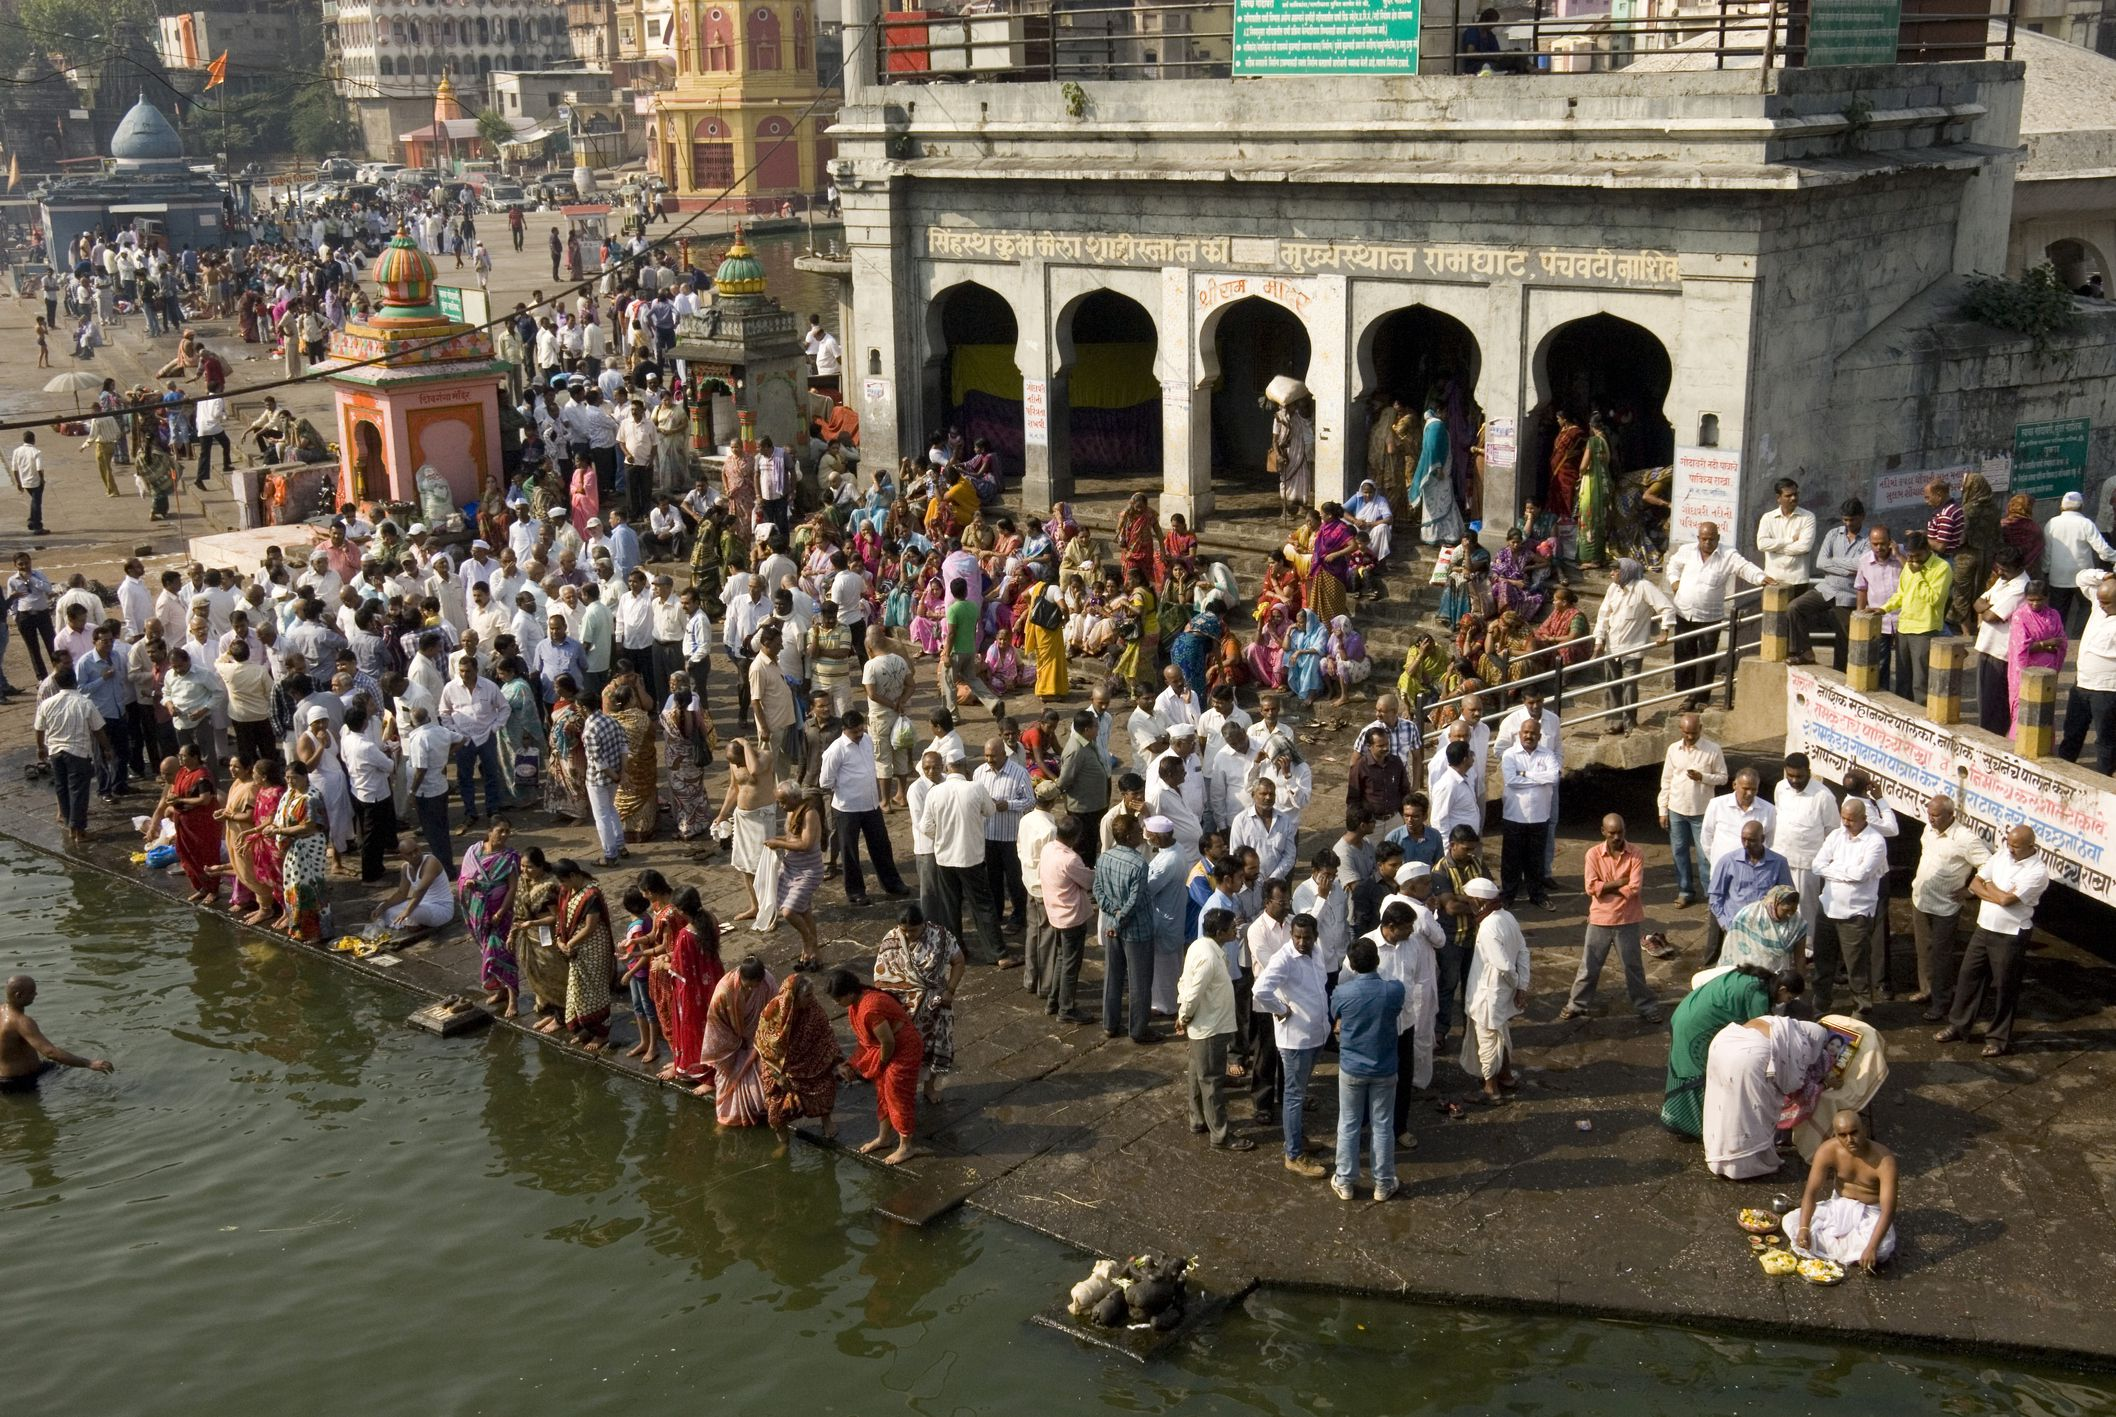 Worshippers at the Ramkund tank on the ghats along the holy River Godavari, Nasik